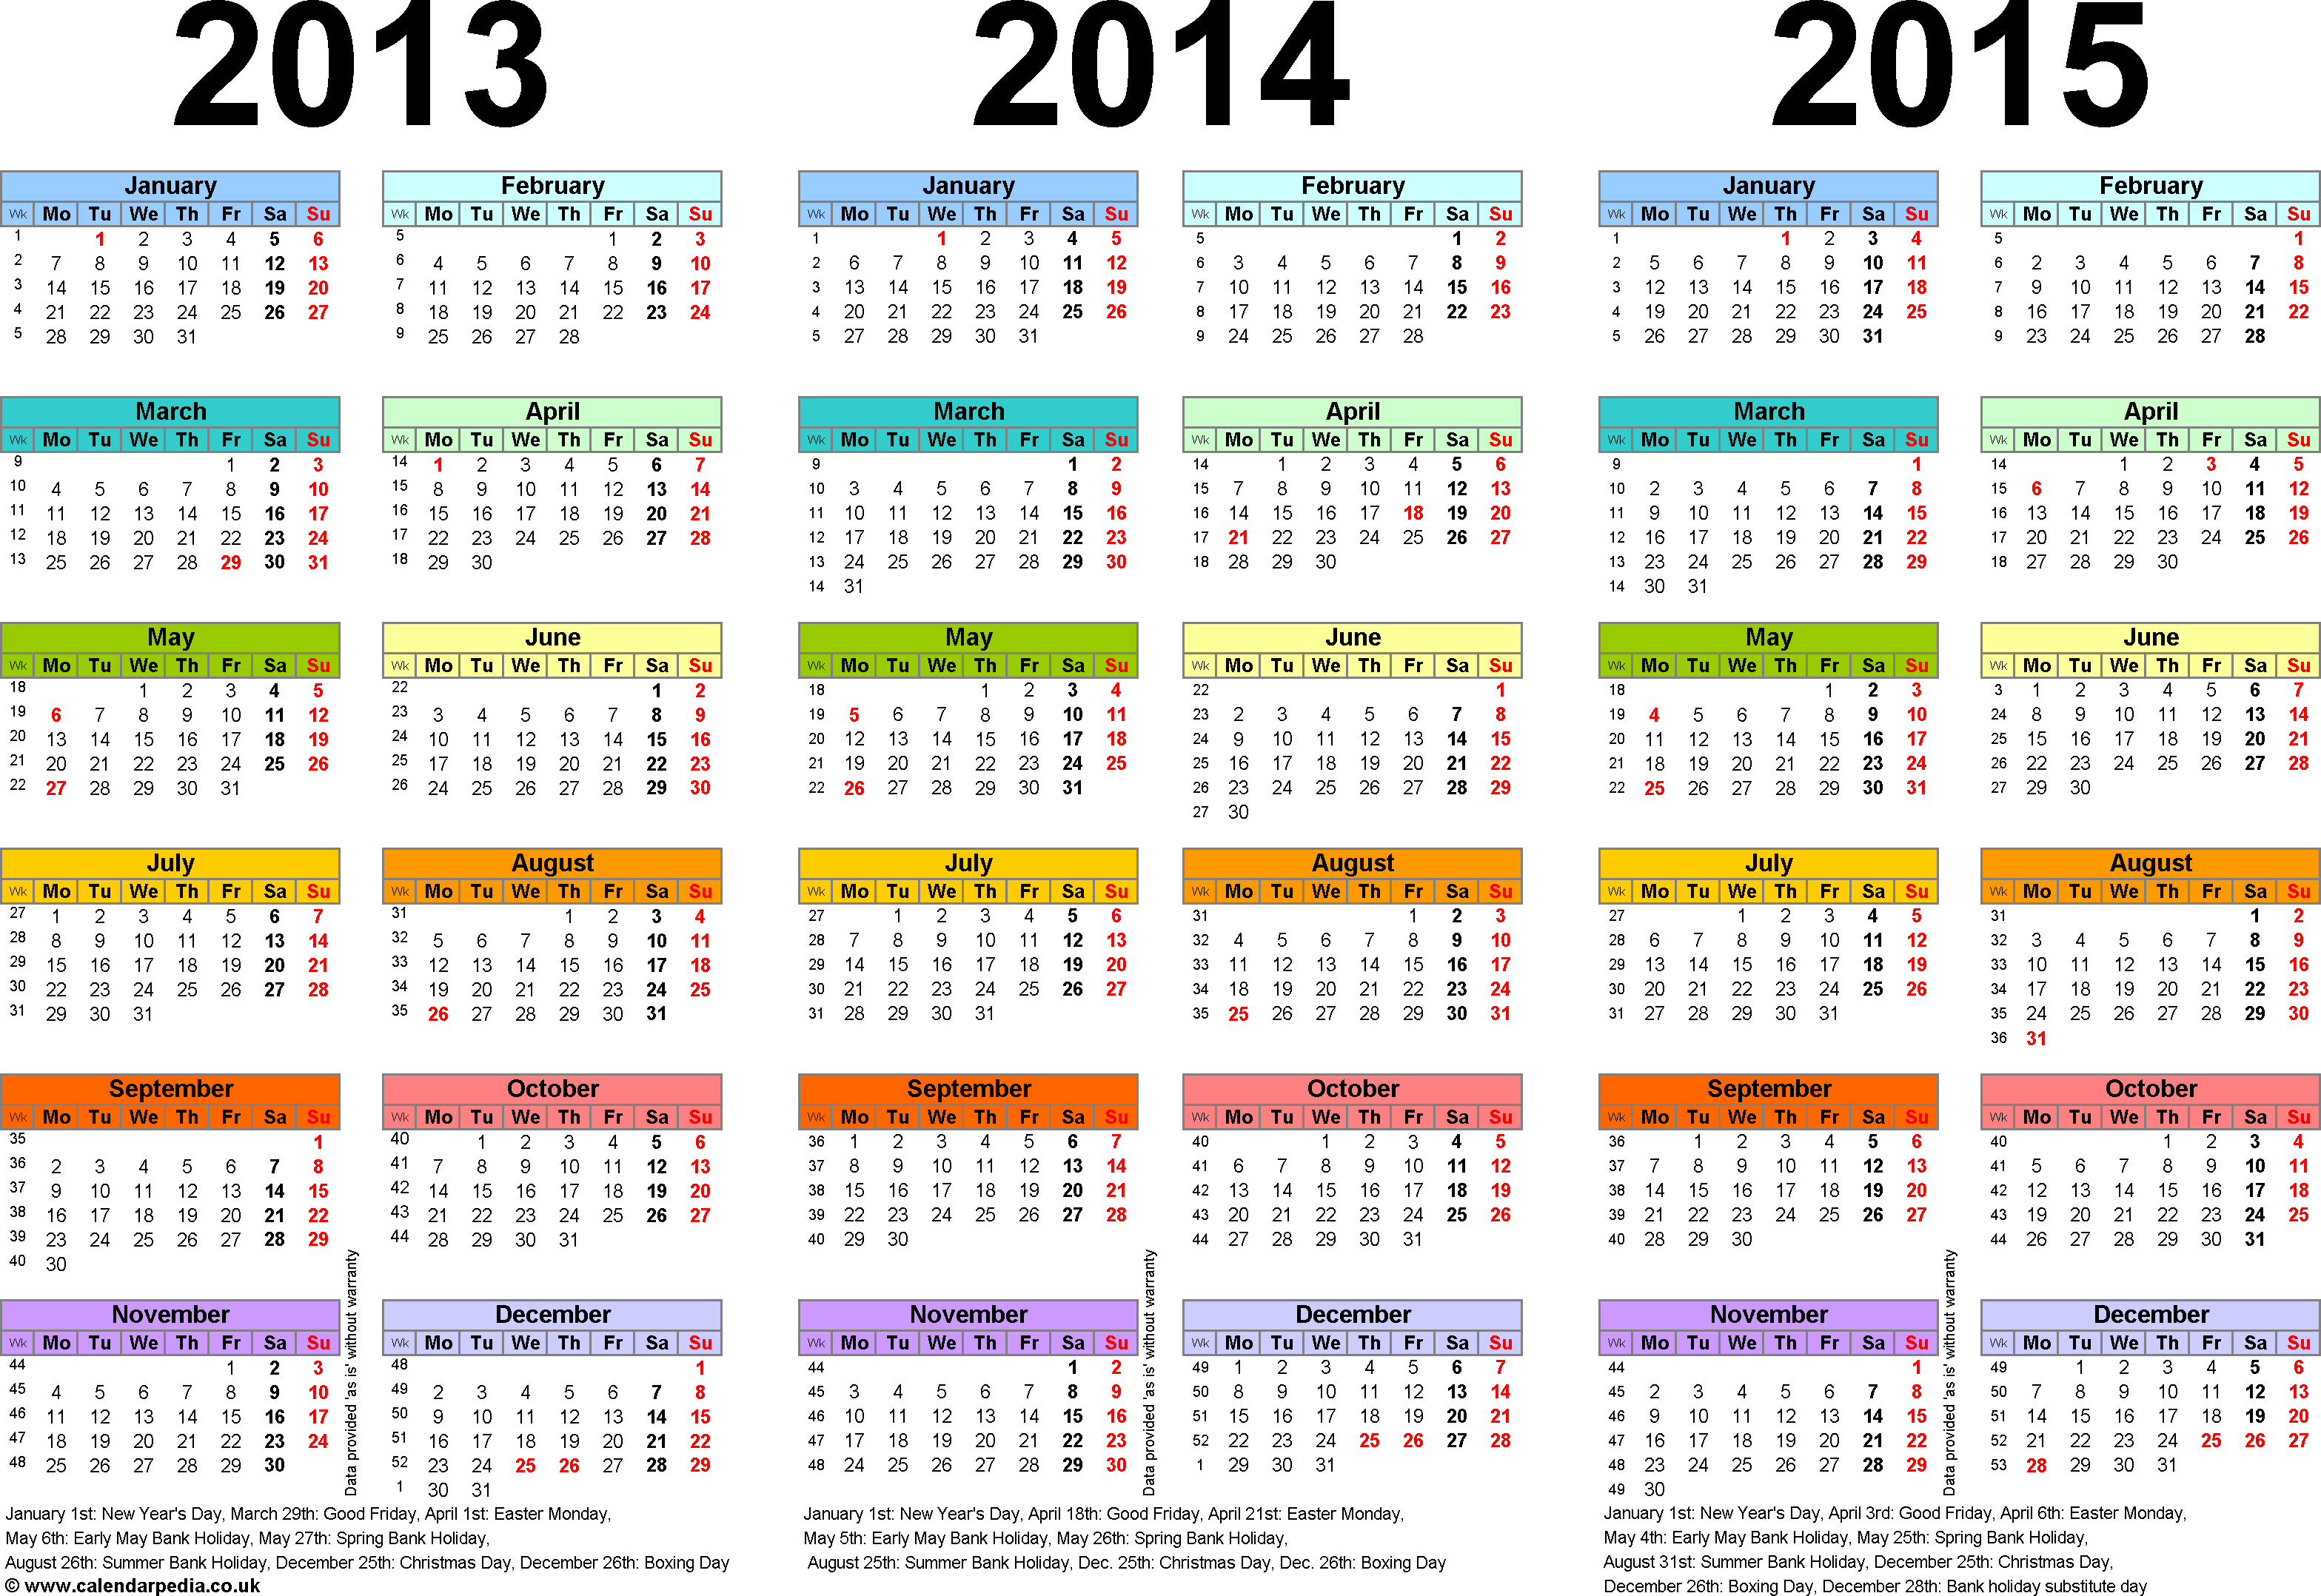 Template 1: PDF template for three year calendar 2013-2015 in colour (landscape orientation, 1 page, A4)